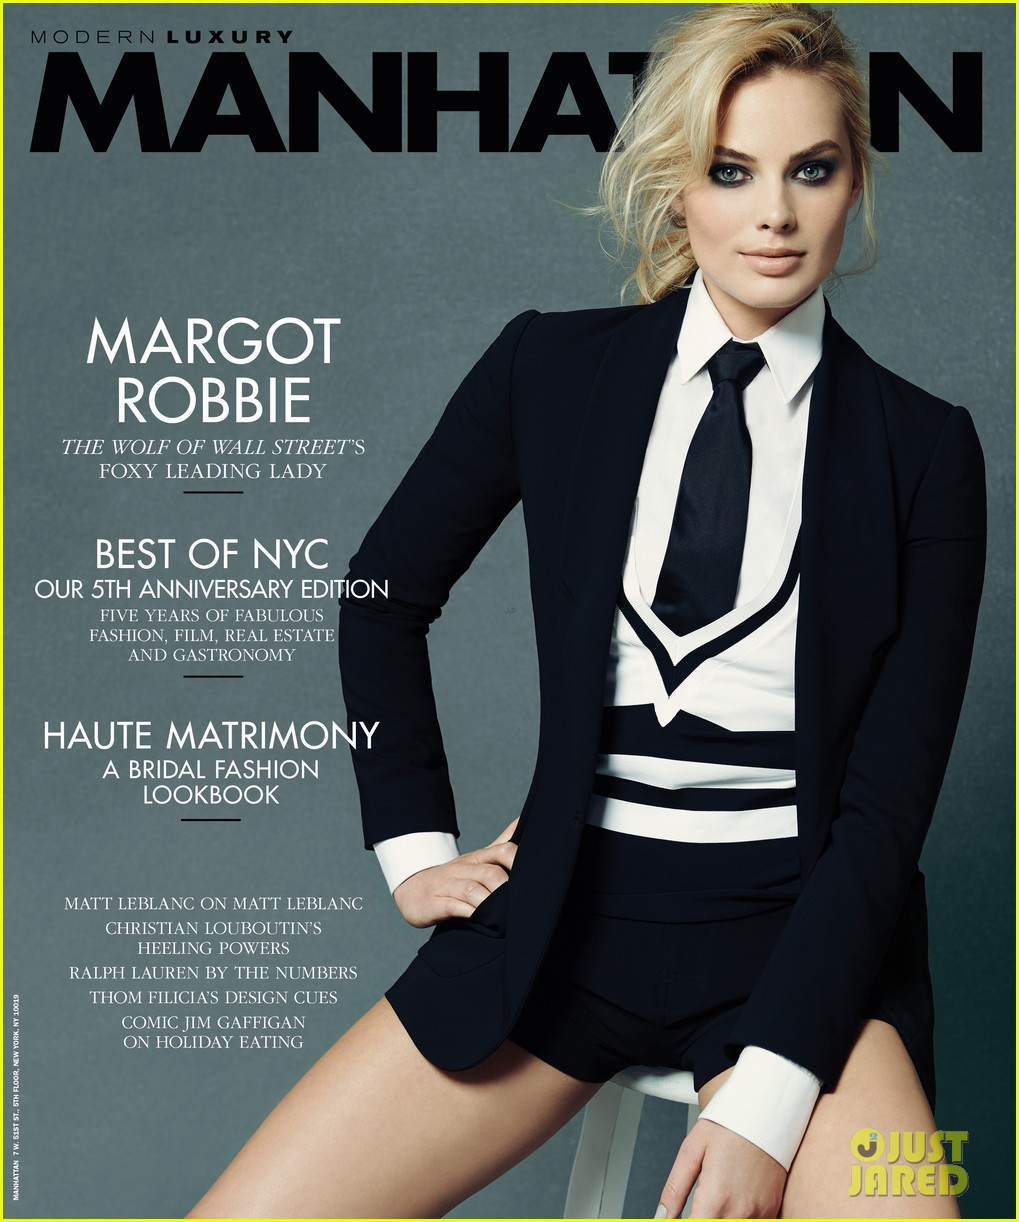 margot robbie covers manhattan magazine january 2014 01.3022098